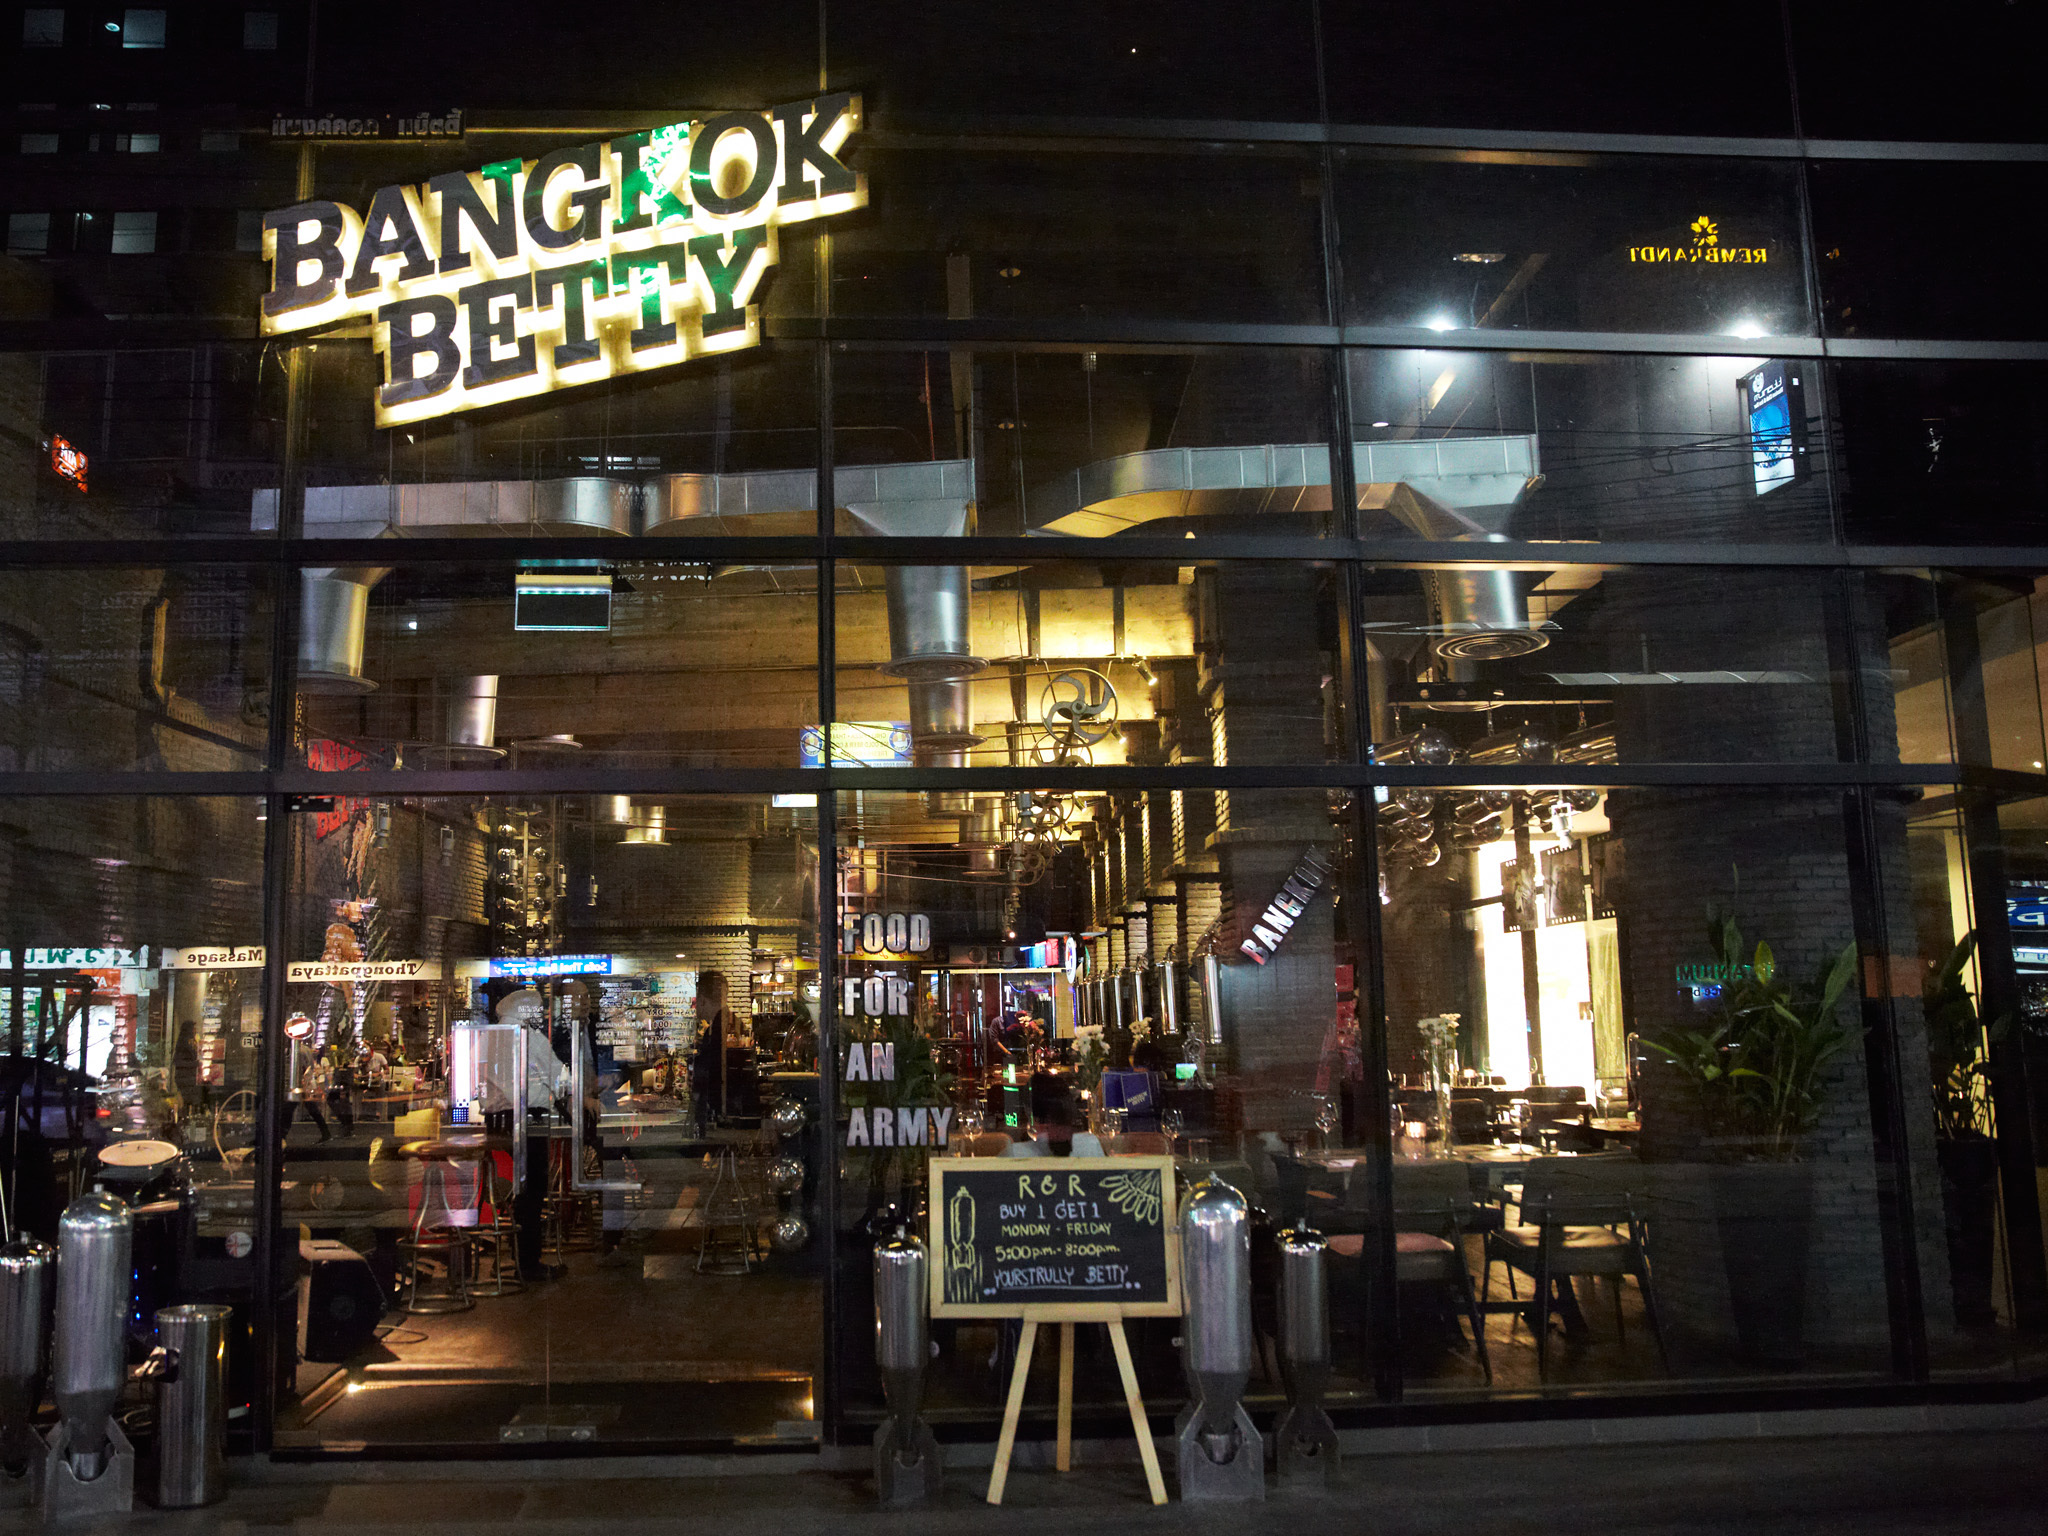 Bangkok betty is an unusual vintage themed bar and restaurant,